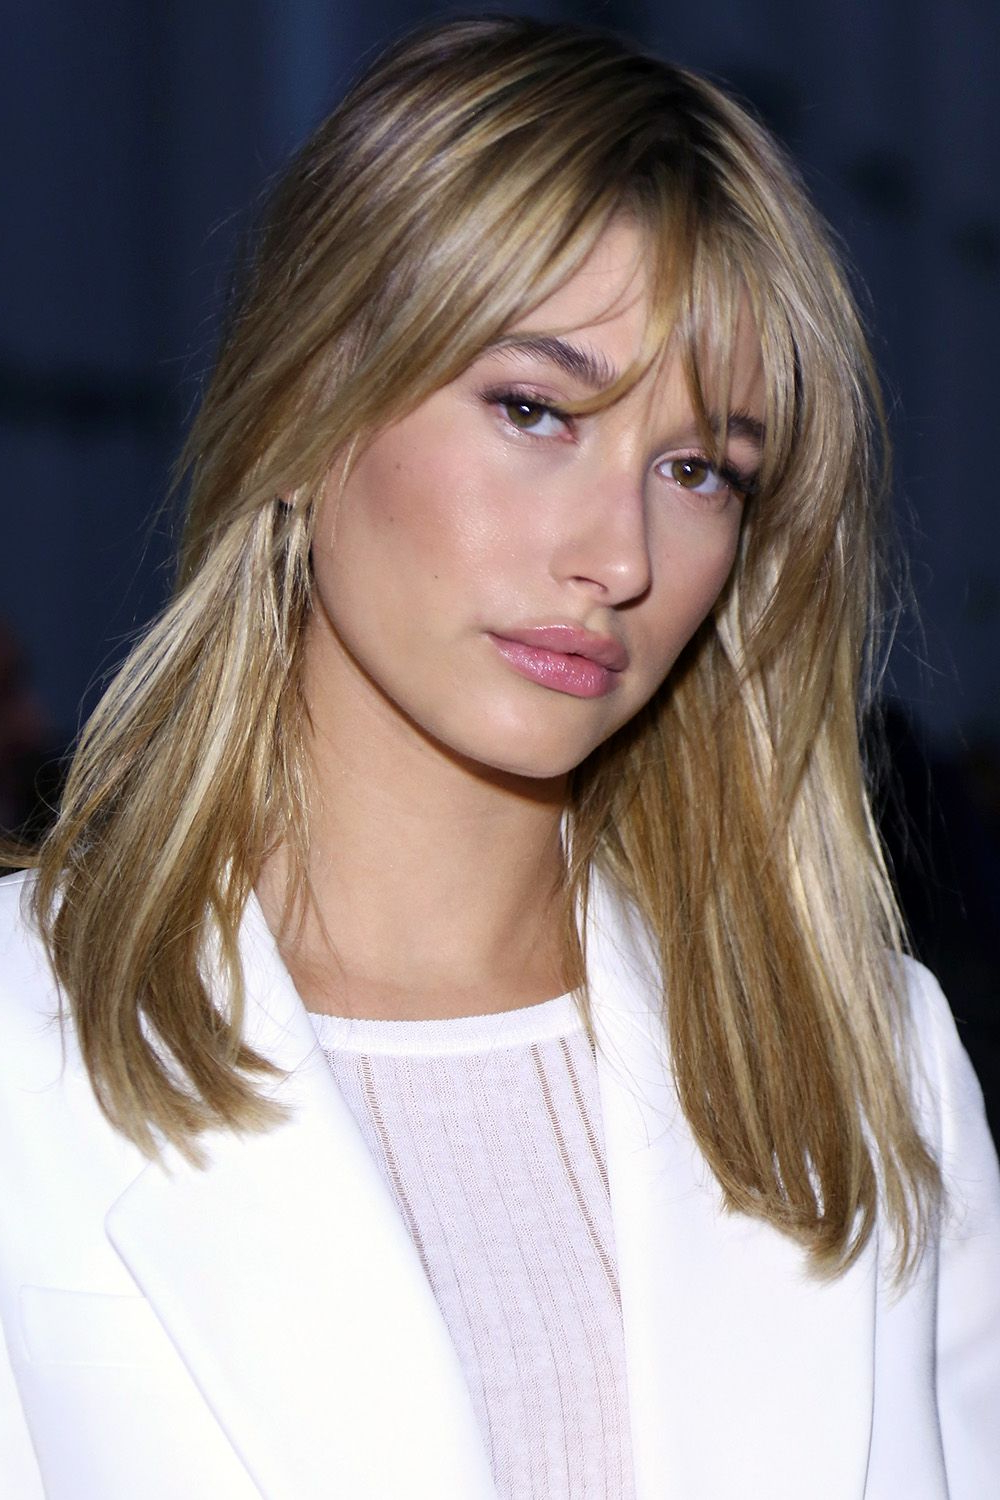 40 Best Medium Hairstyles – Celebrities With Shoulder Length Haircuts Intended For Recent Medium Hairstyles With Straight Bangs (Gallery 18 of 20)